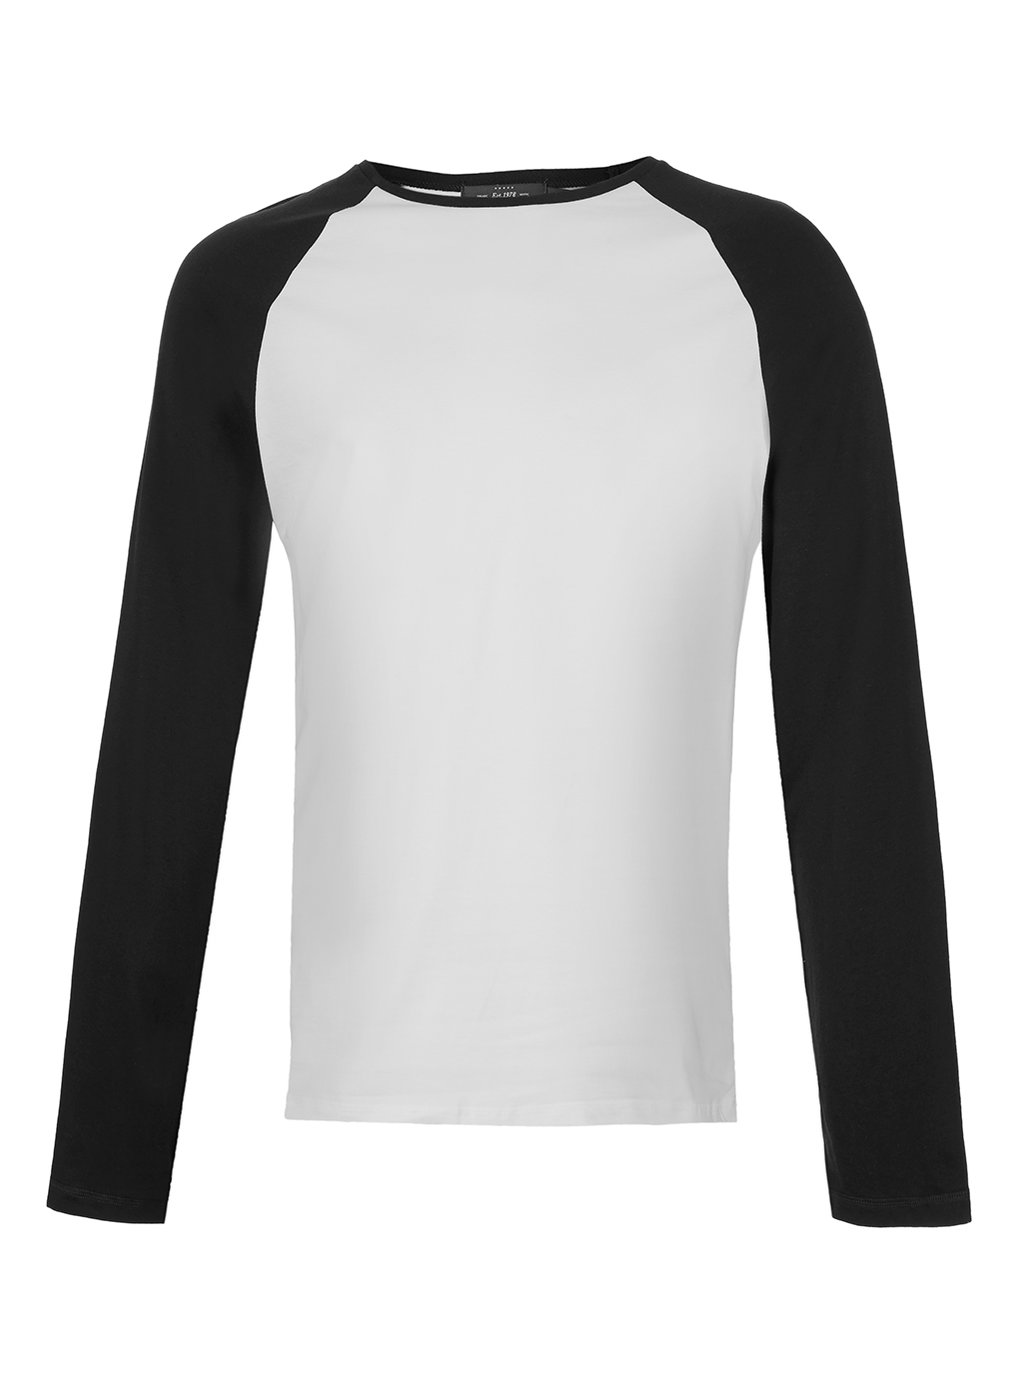 long sleeve black and white shirt artee shirt